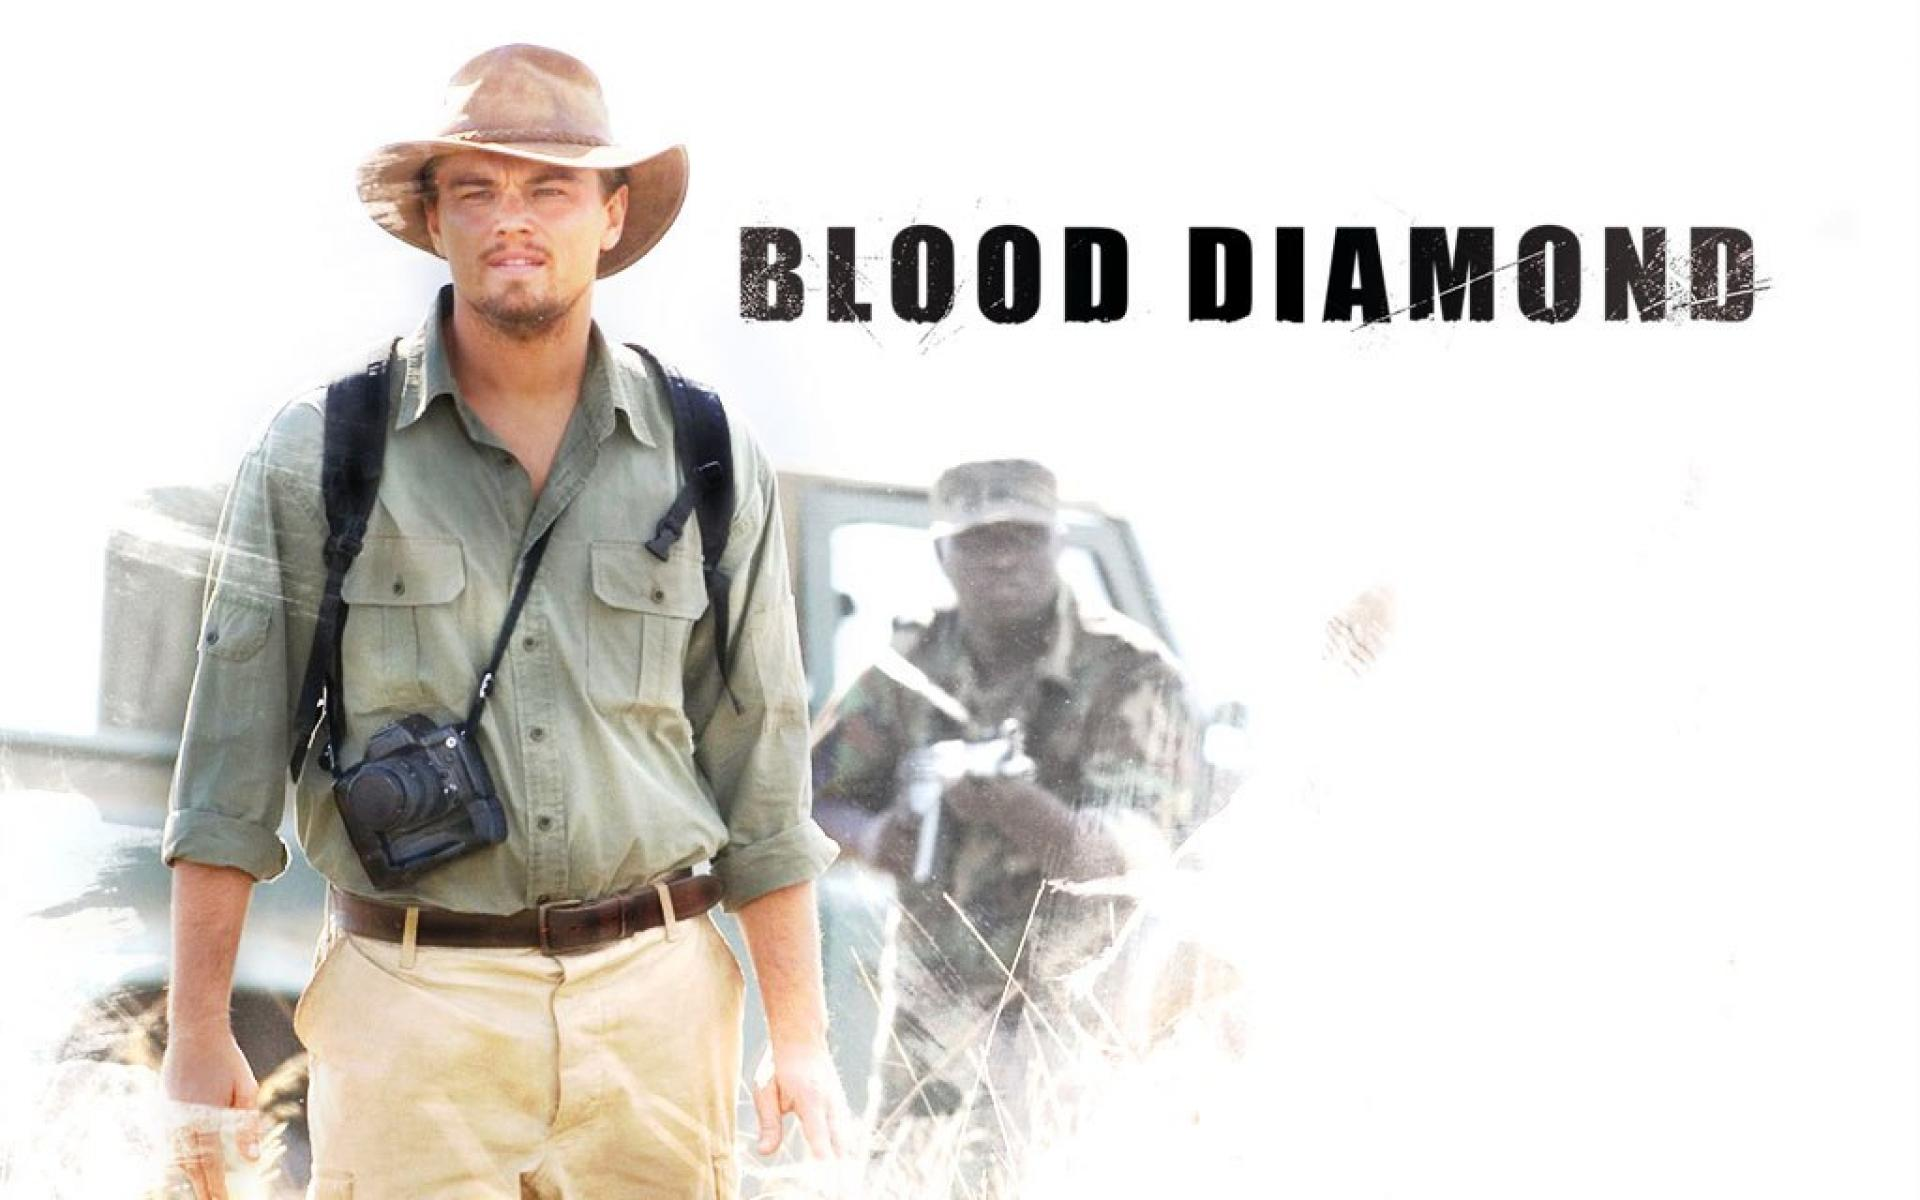 political review of blood diamond Author becky korman compares and contrasts the strengths and weaknesses of a nigerian (ezra) and american (blood diamond) film based on a similar subject: the consequences of civil war on.